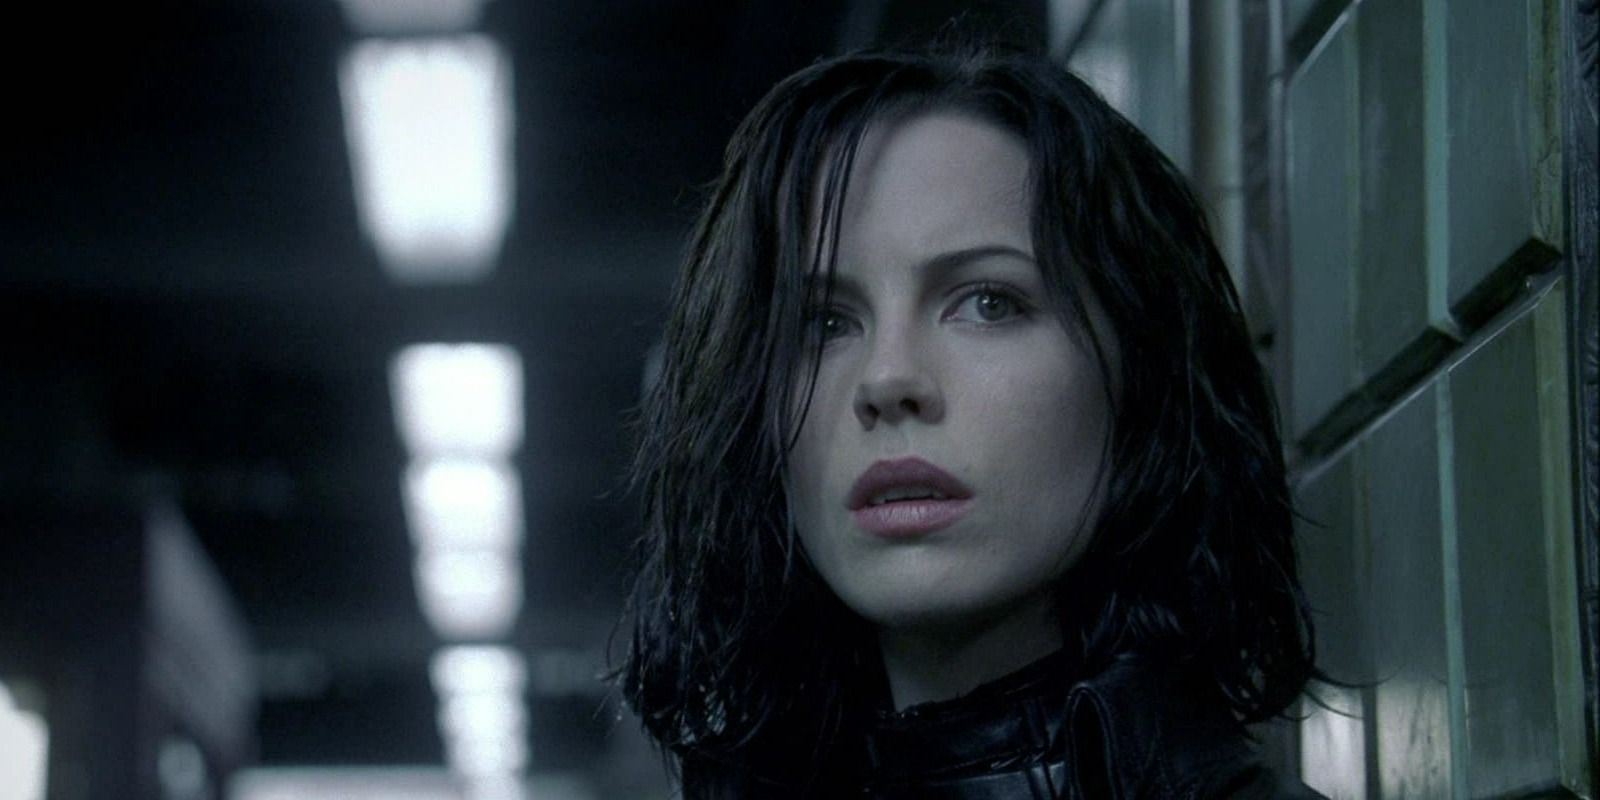 Underworld 15 Moments That Prove Its An Amazing Action Franchise